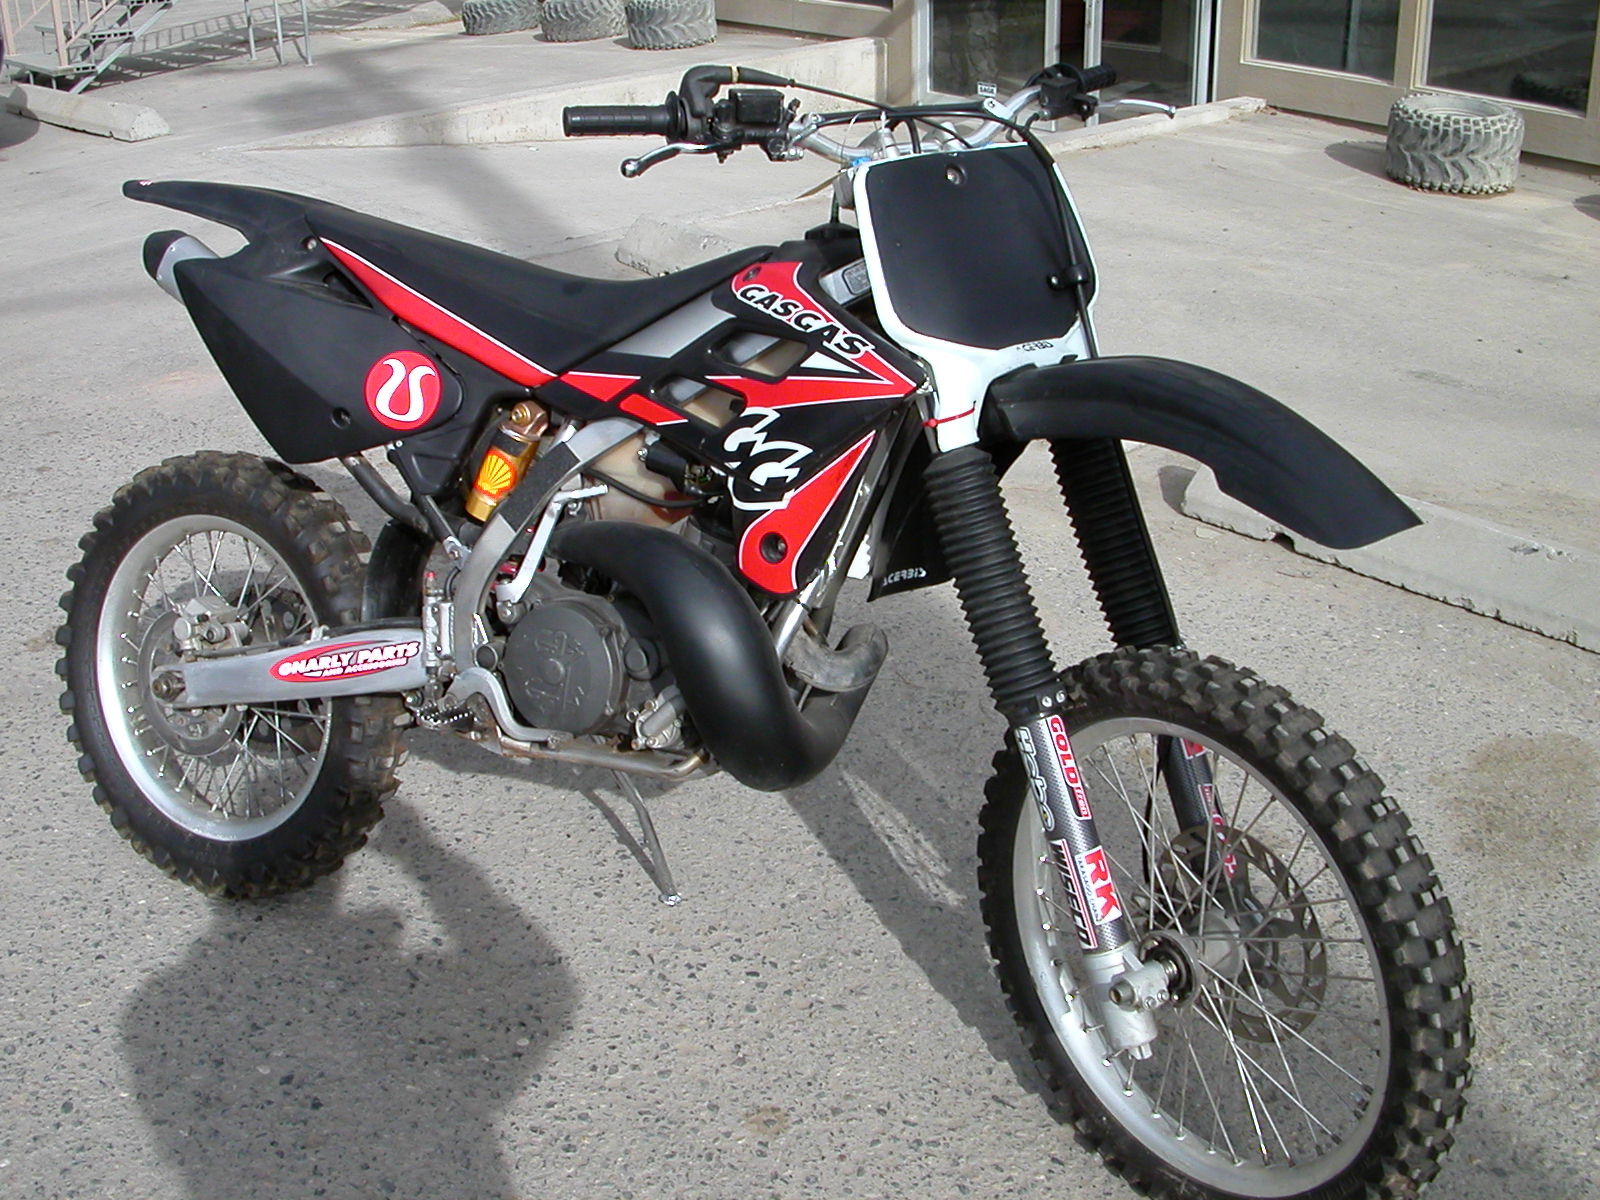 GAS GAS SM 450 2004 images #71260